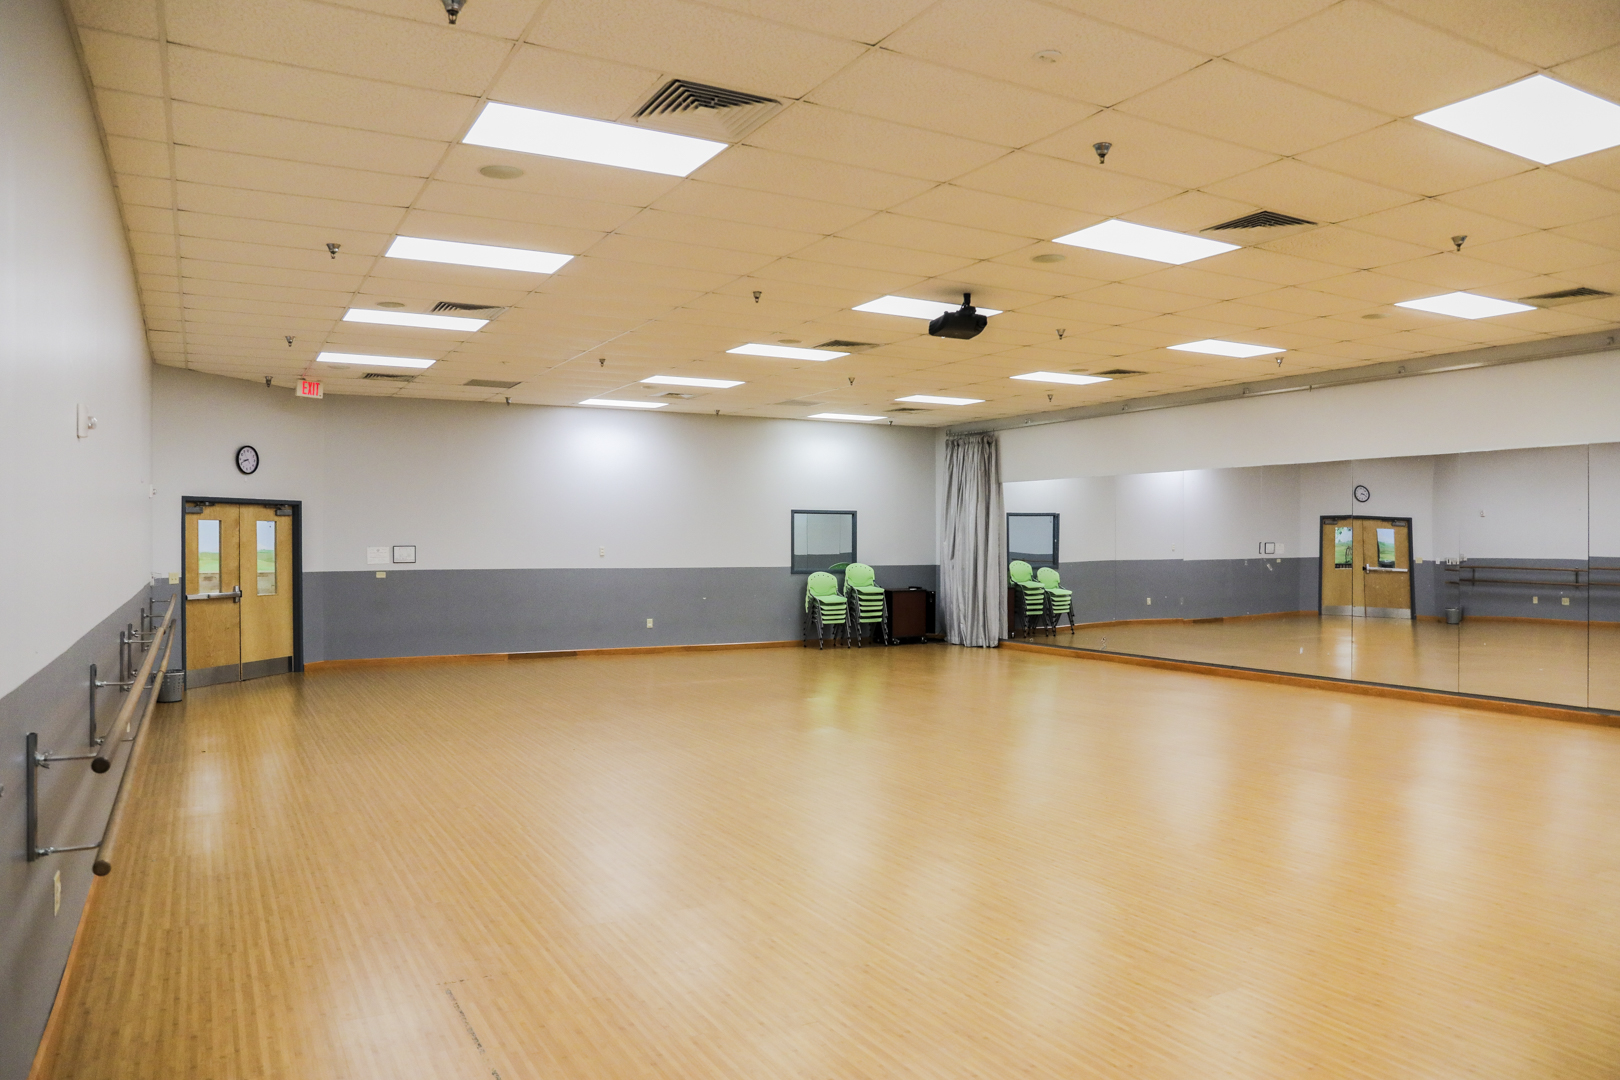 Amenities include a hardwood floor, full length mirrors (with curtain closure), ballet barres, surround sound speakers with CD & IPod capabilities, large screen and ceiling mount projector with Blue Ray capabilities